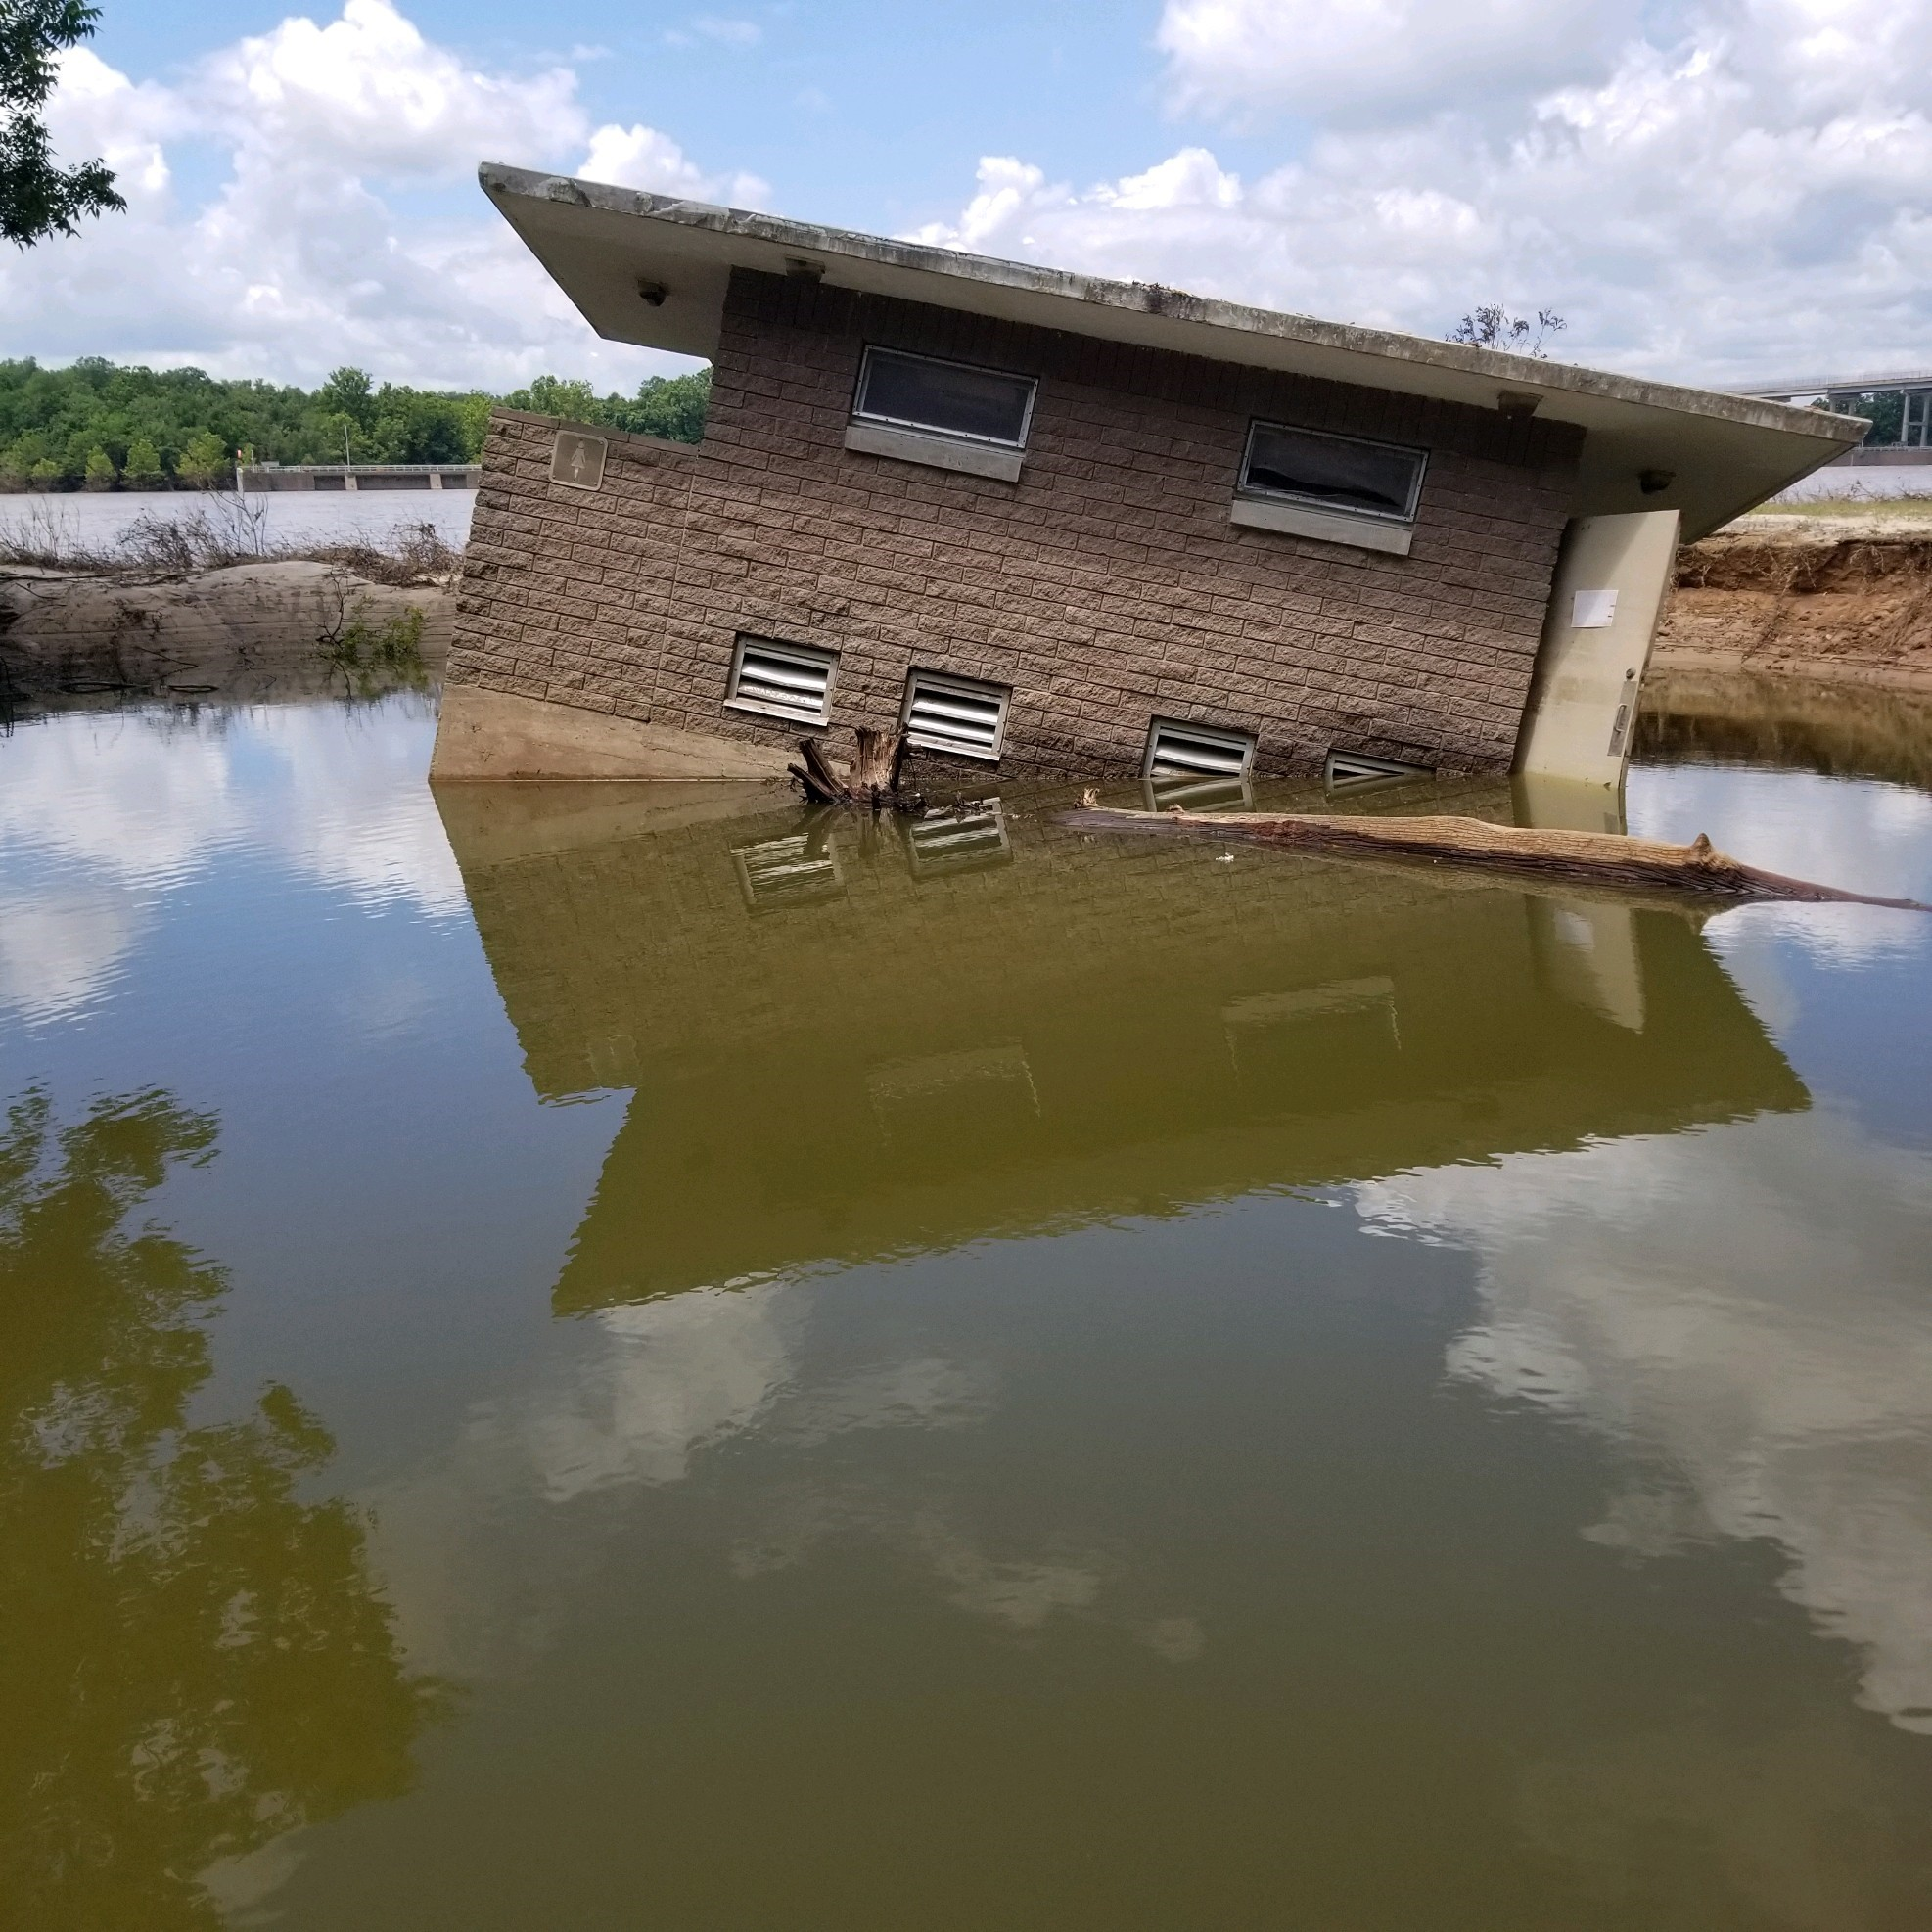 The restroom at Sheppard Island Park near Pine Bluff, Arkansas was swept off its foundation during the spring flood event of 2019.